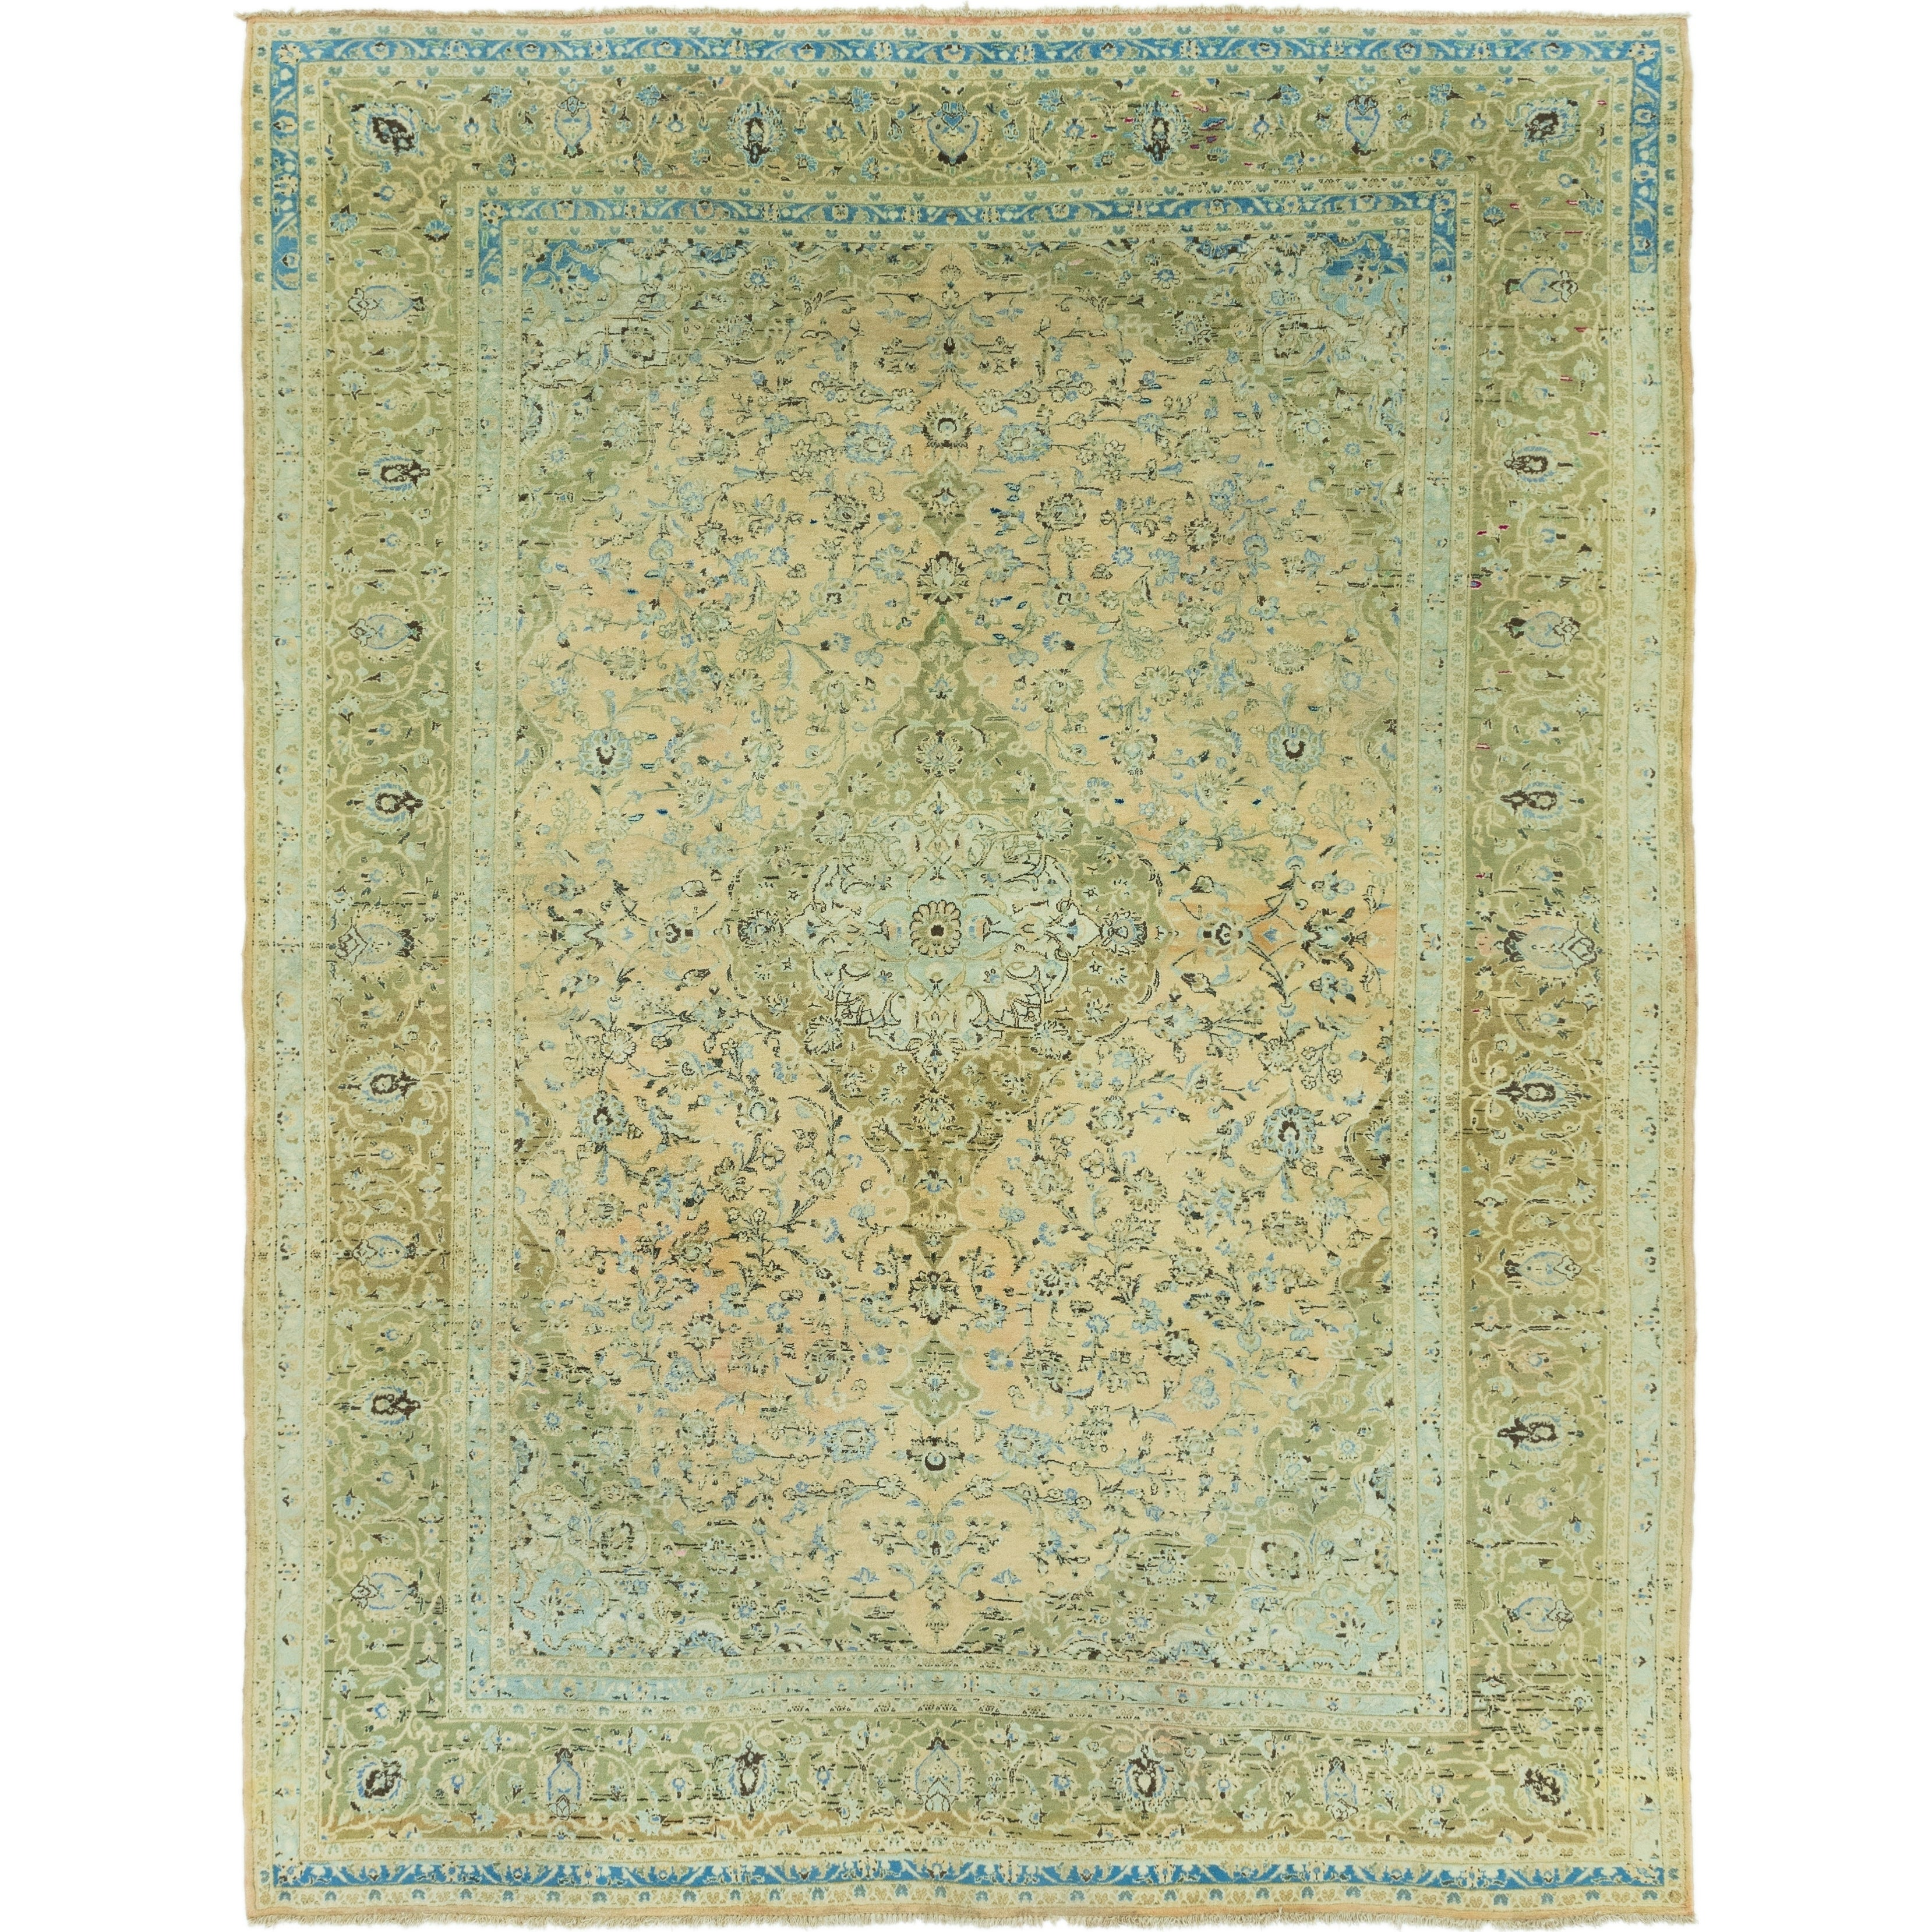 Hand Knotted Kashan Semi Antique Wool Area Rug - 9 10 x 13 2 (peach - 9 10 x 13 2)